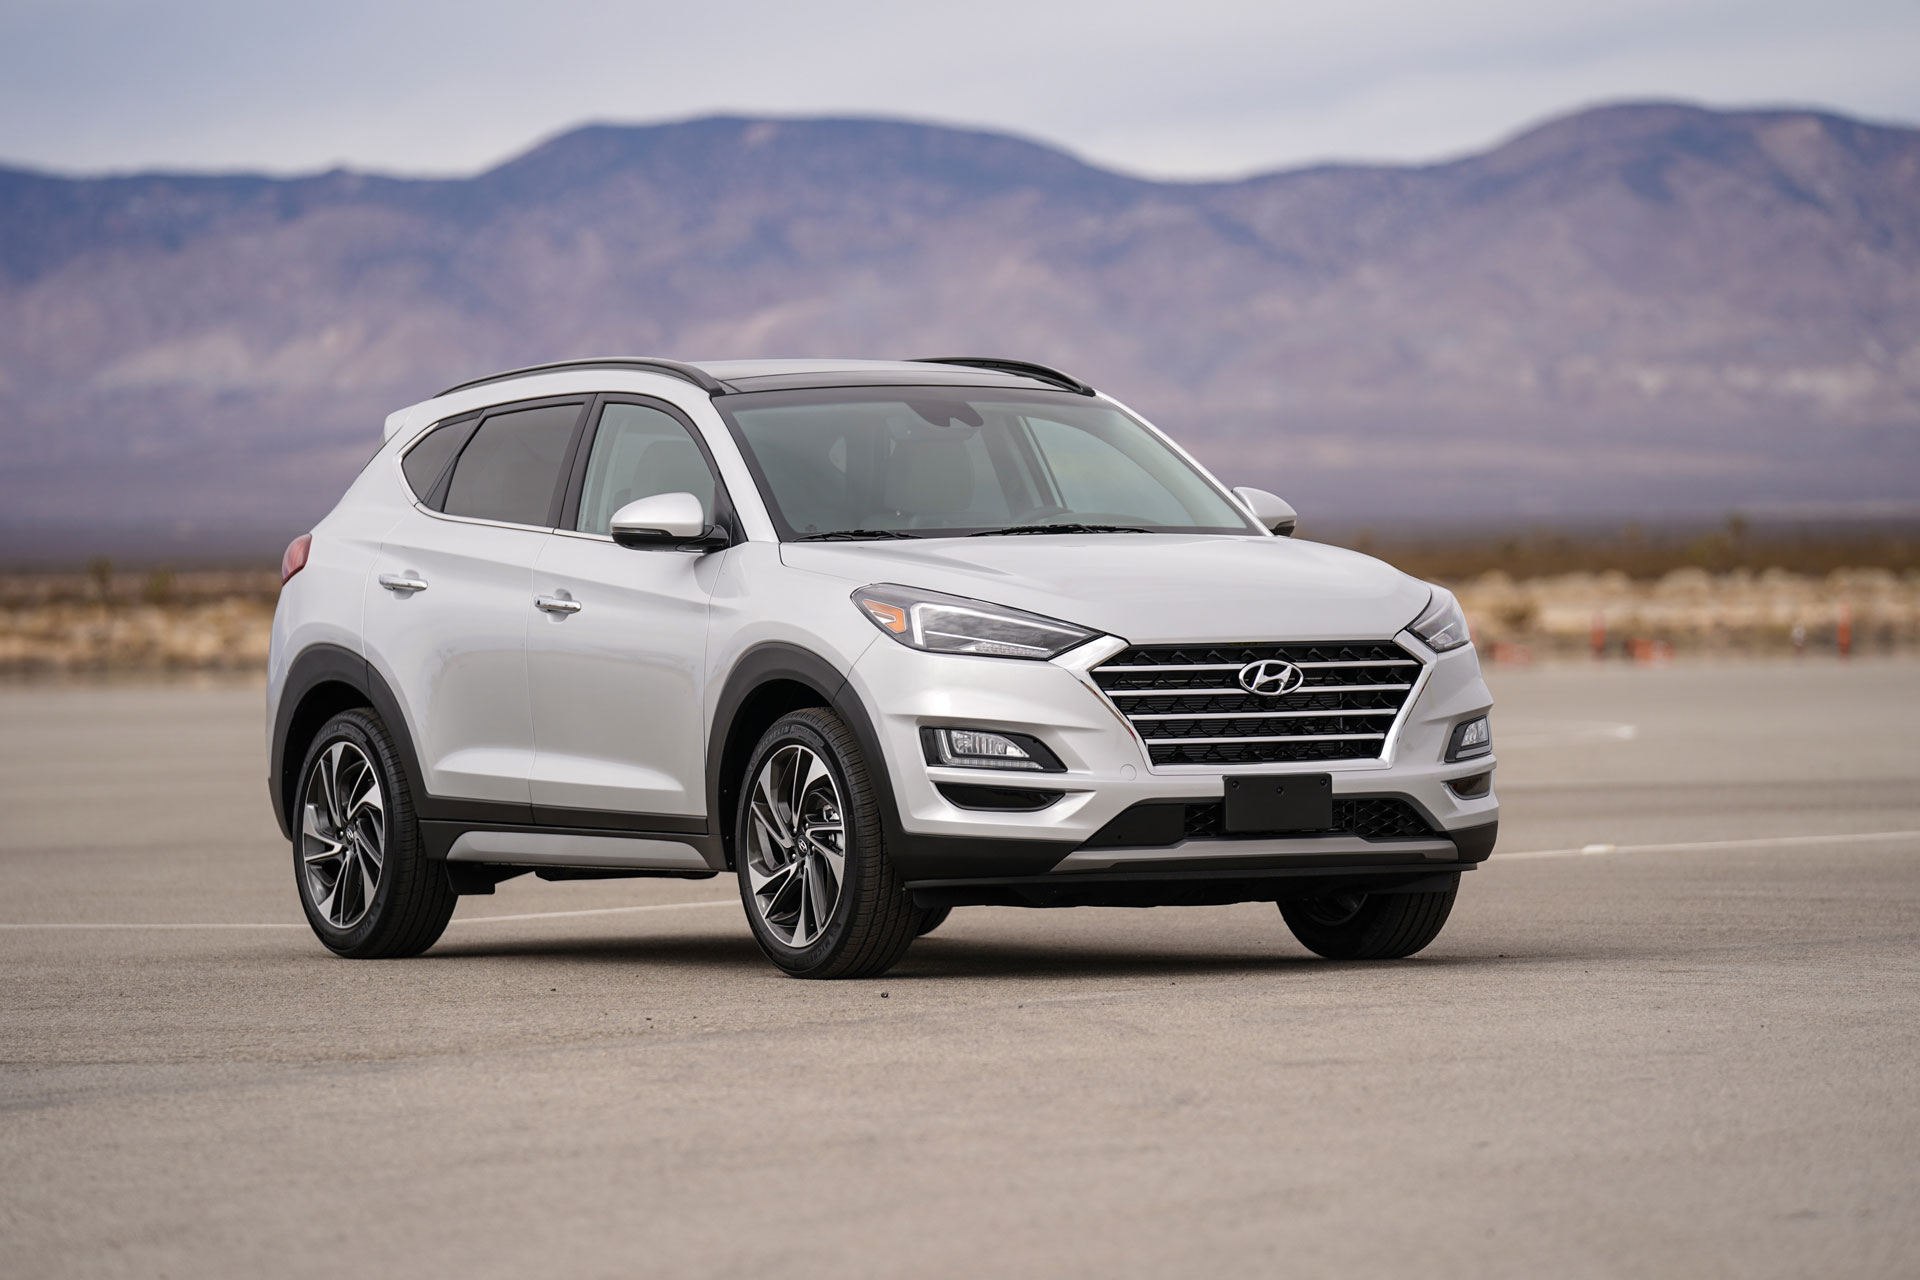 2019 Hyundai Tucson Hyundaiusa Com >> 2019 Hyundai Tucson Review Ratings Specs Prices And